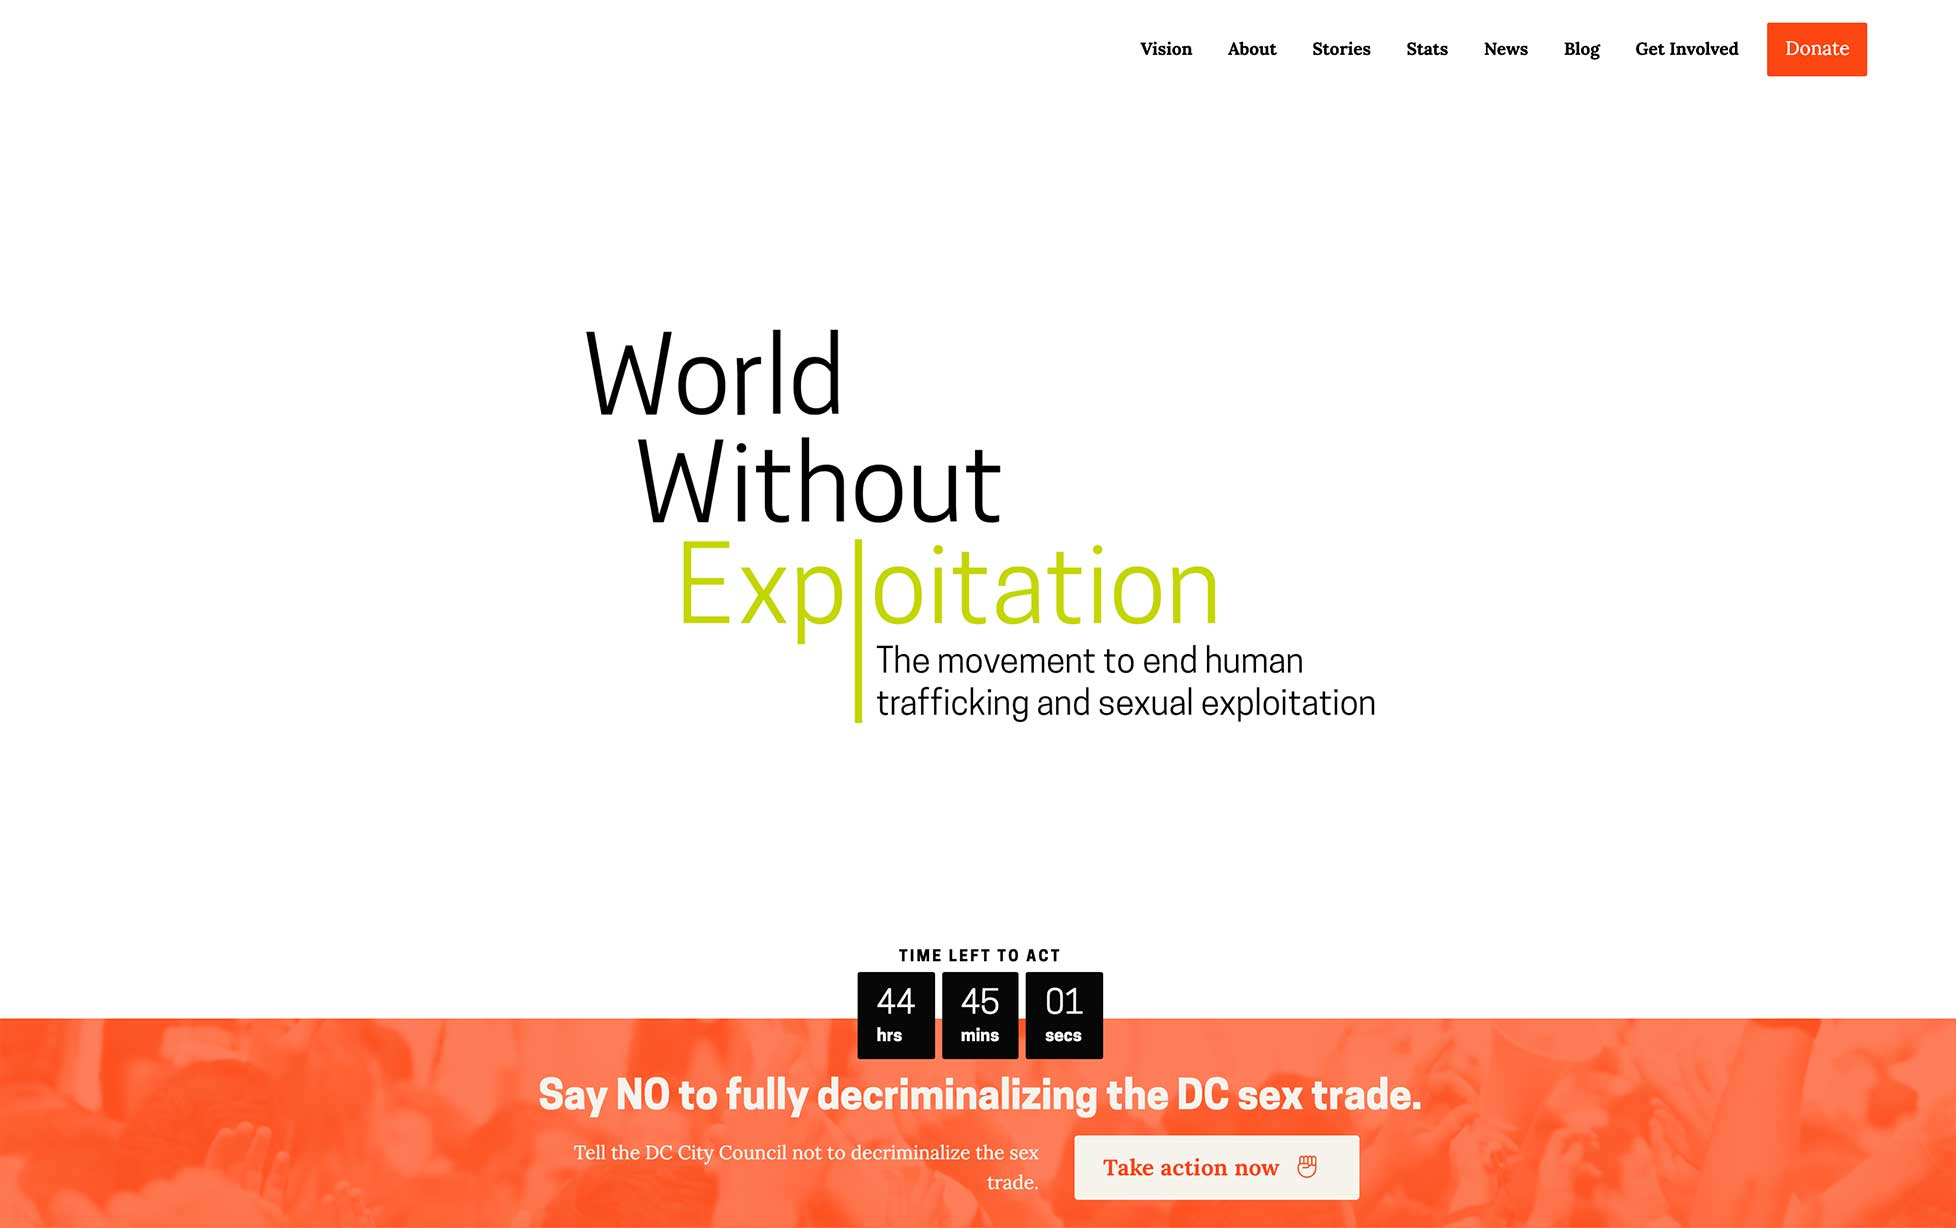 The World Without Exploitation homepage, showing the new logo and a red banner with an urgent action initiative for visitors to take.